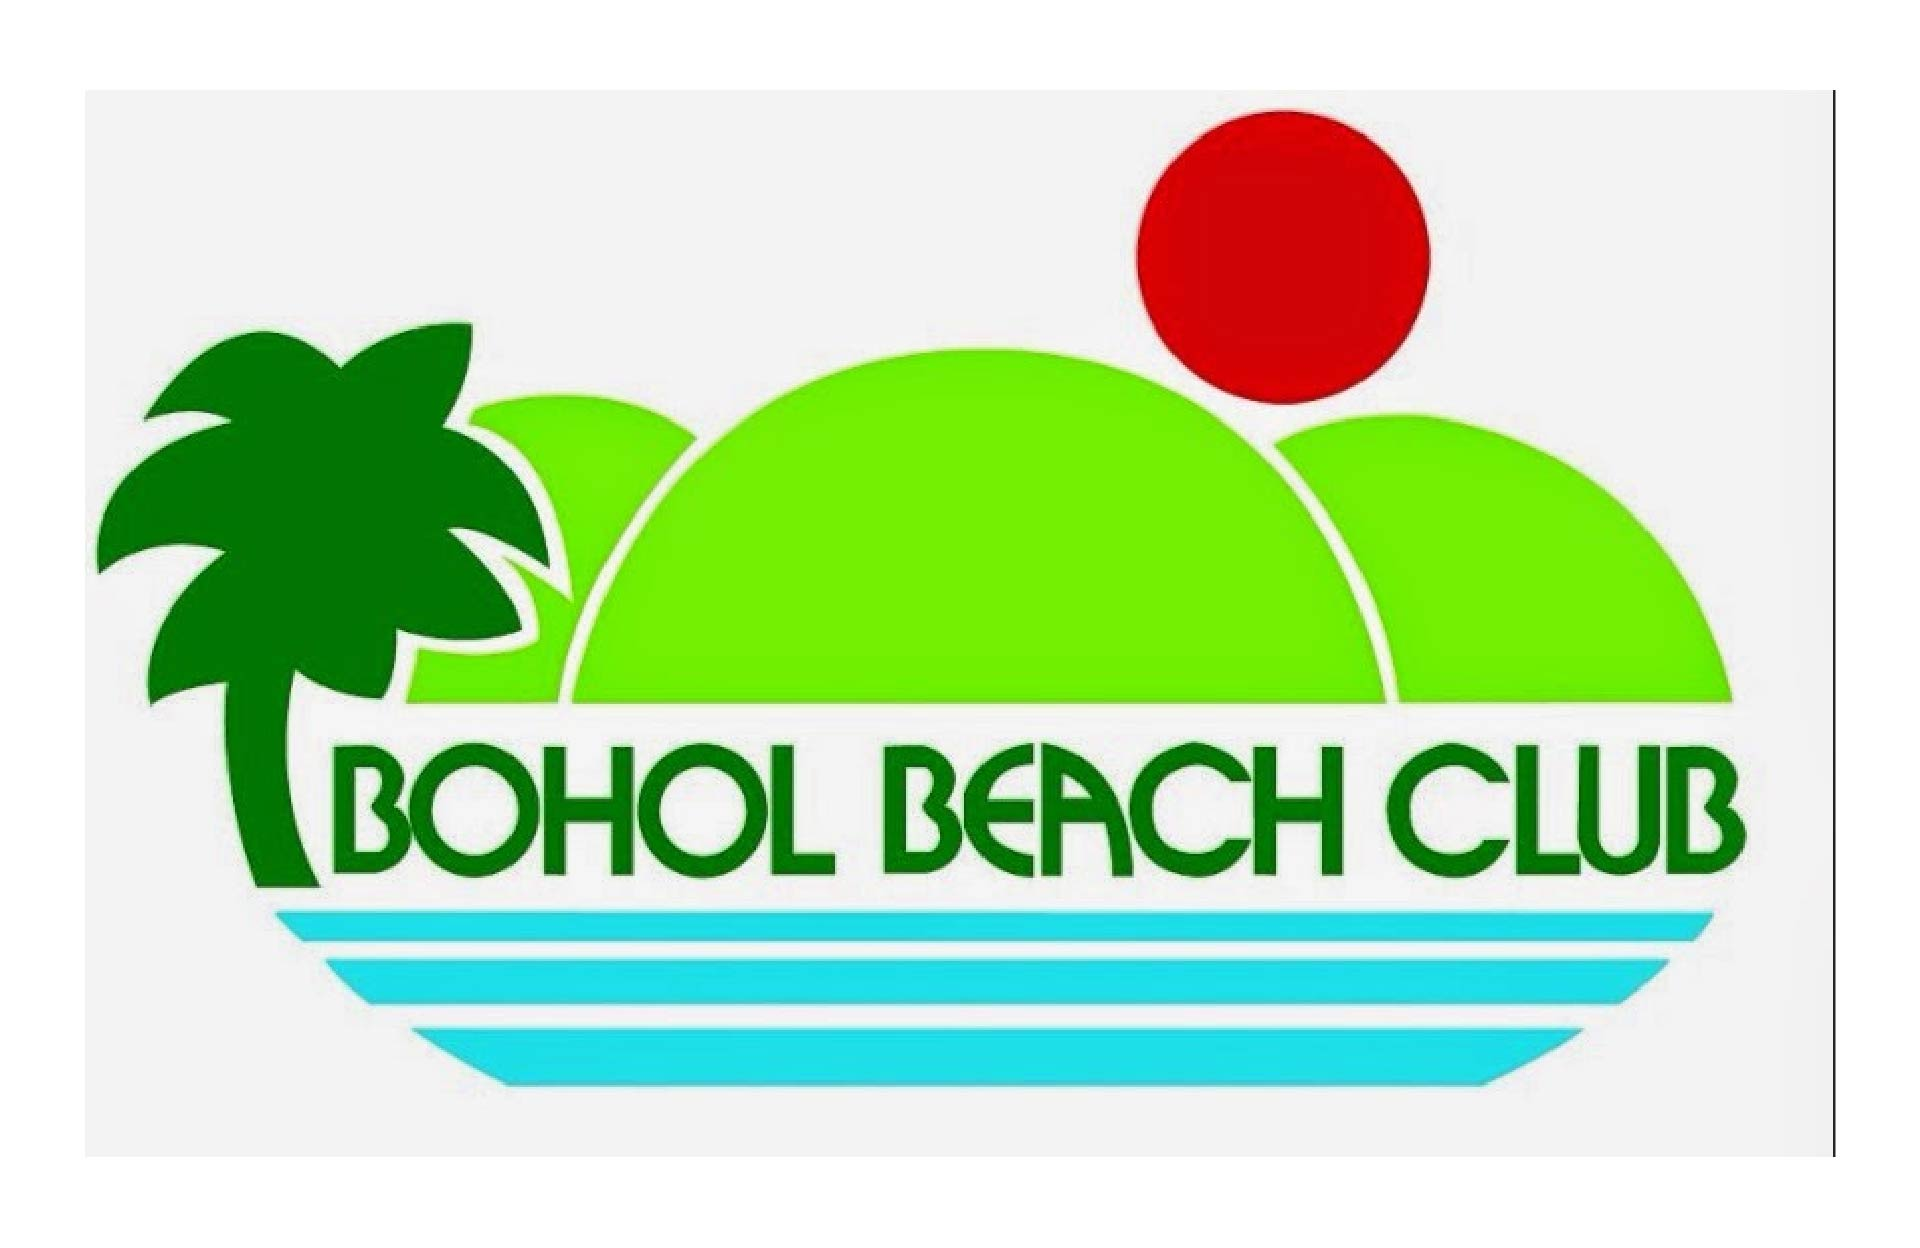 Bohol Beach CLub-01